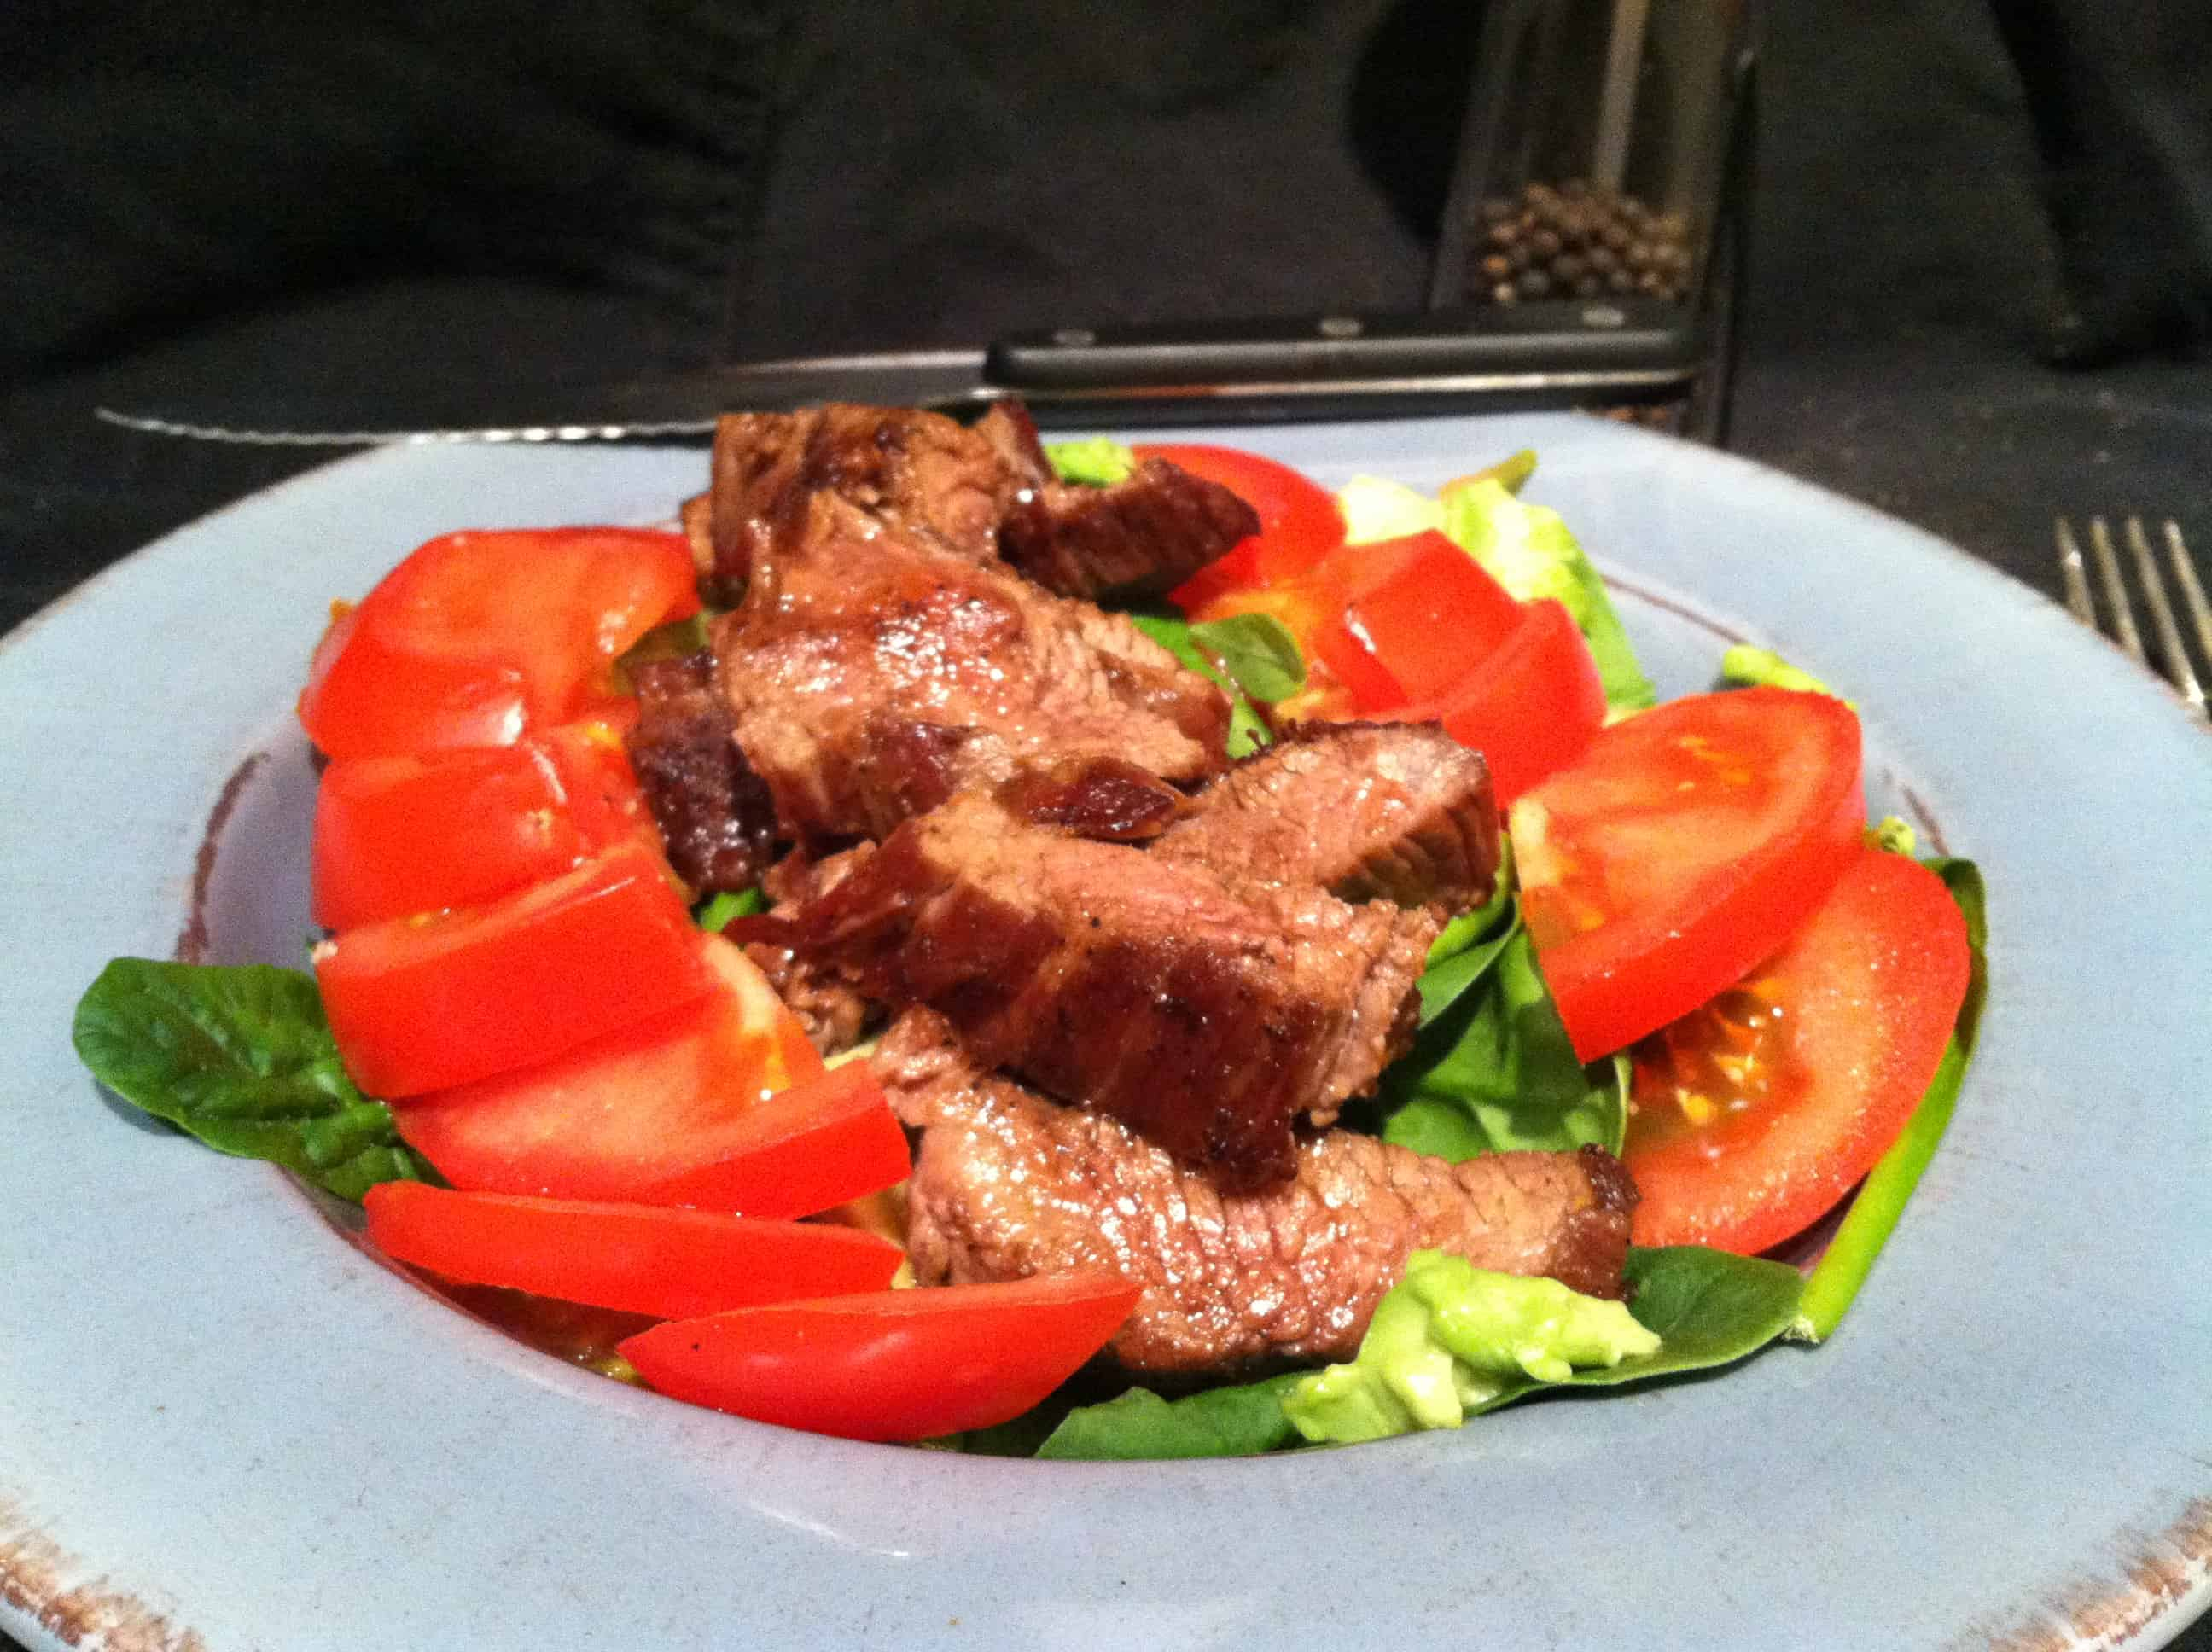 High Protein, Low Carb Steak Salad